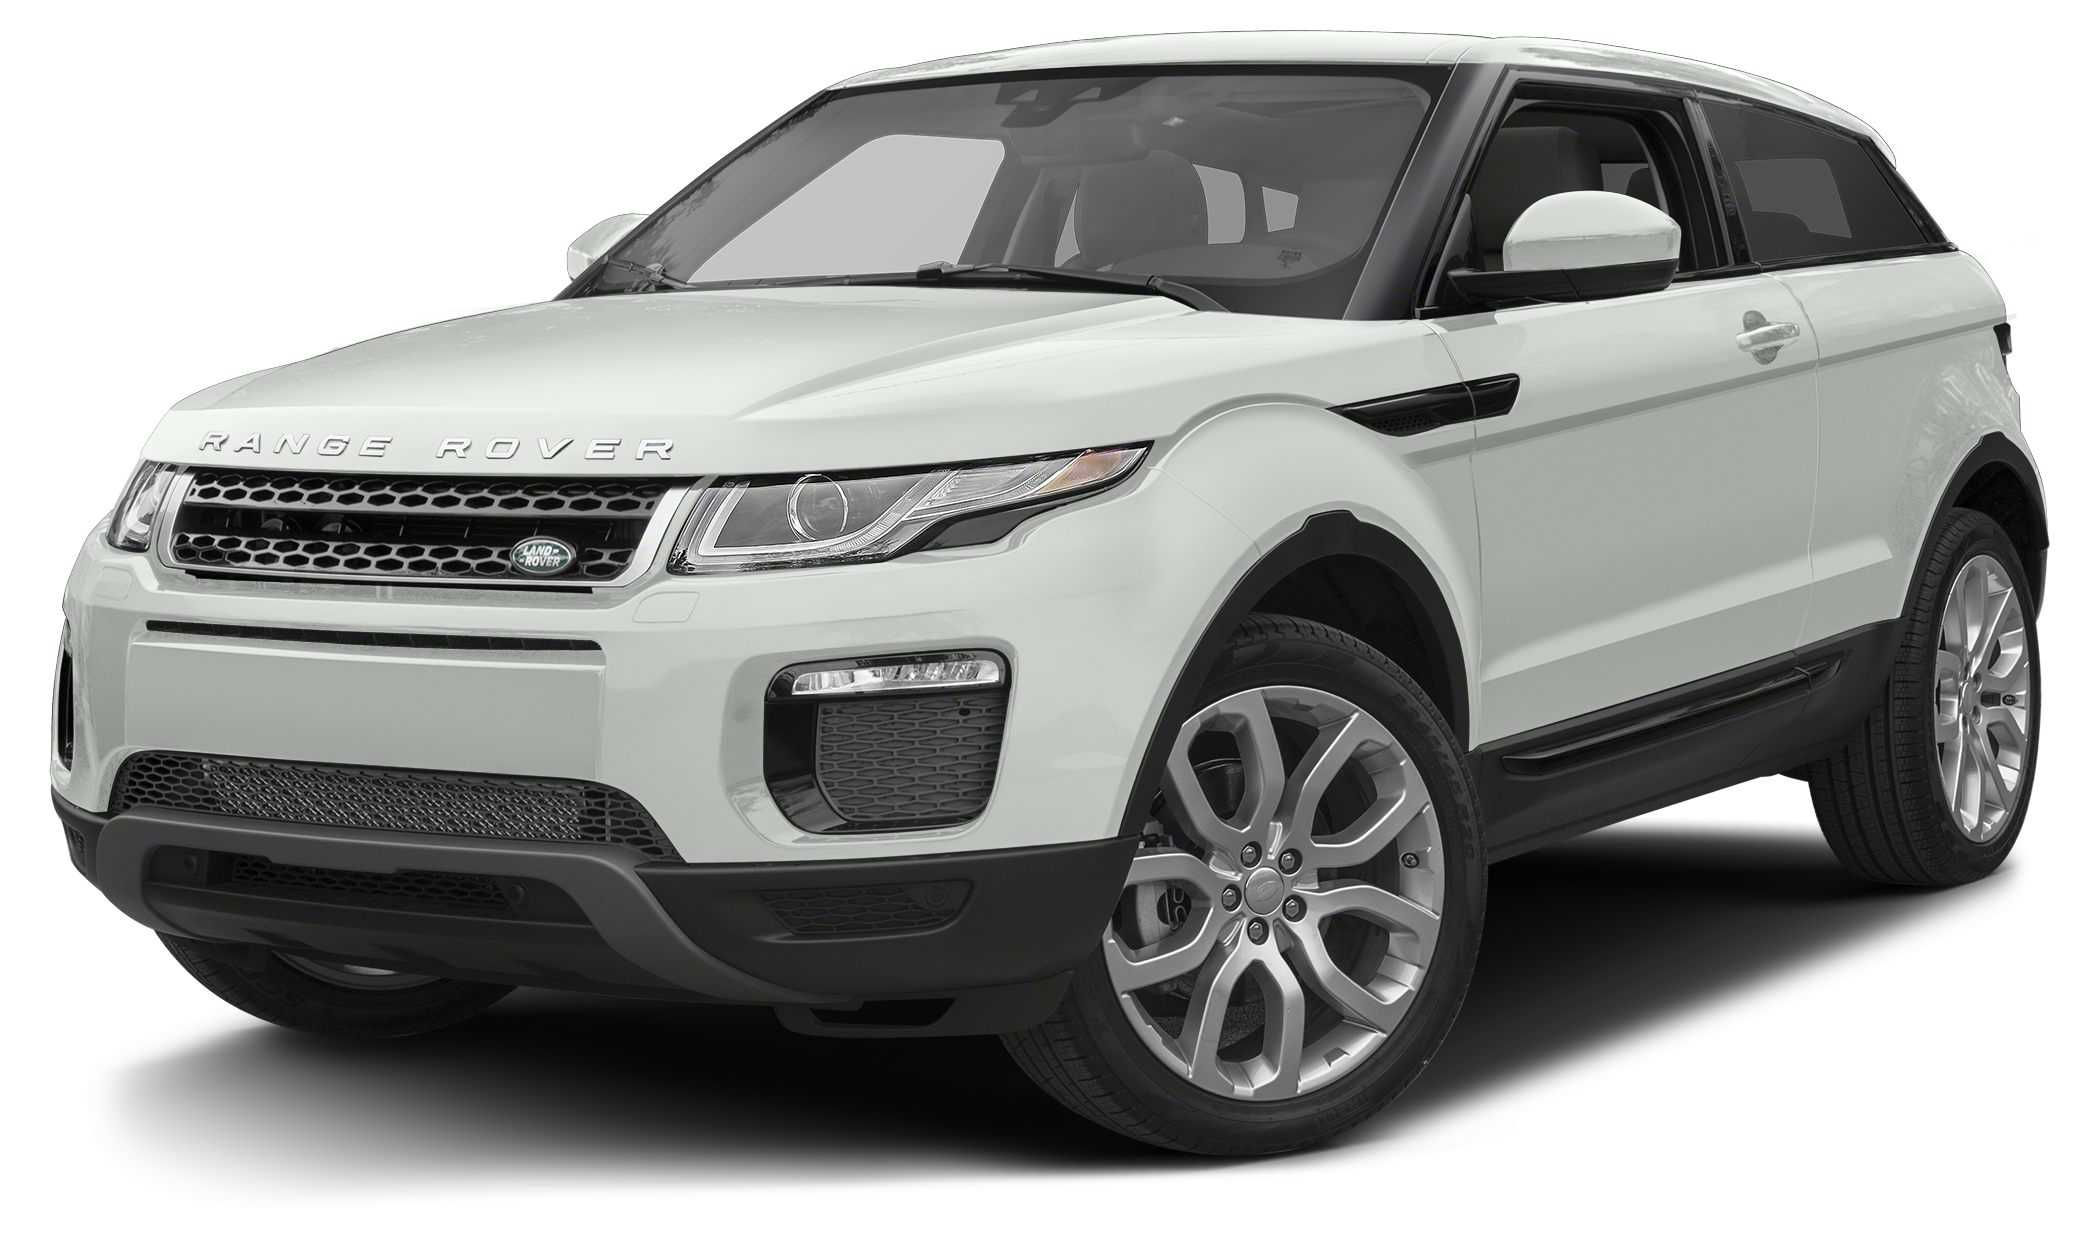 2017 land rover range rover evoque for sale in pasadena ca salvp2bg8hh176291. Black Bedroom Furniture Sets. Home Design Ideas